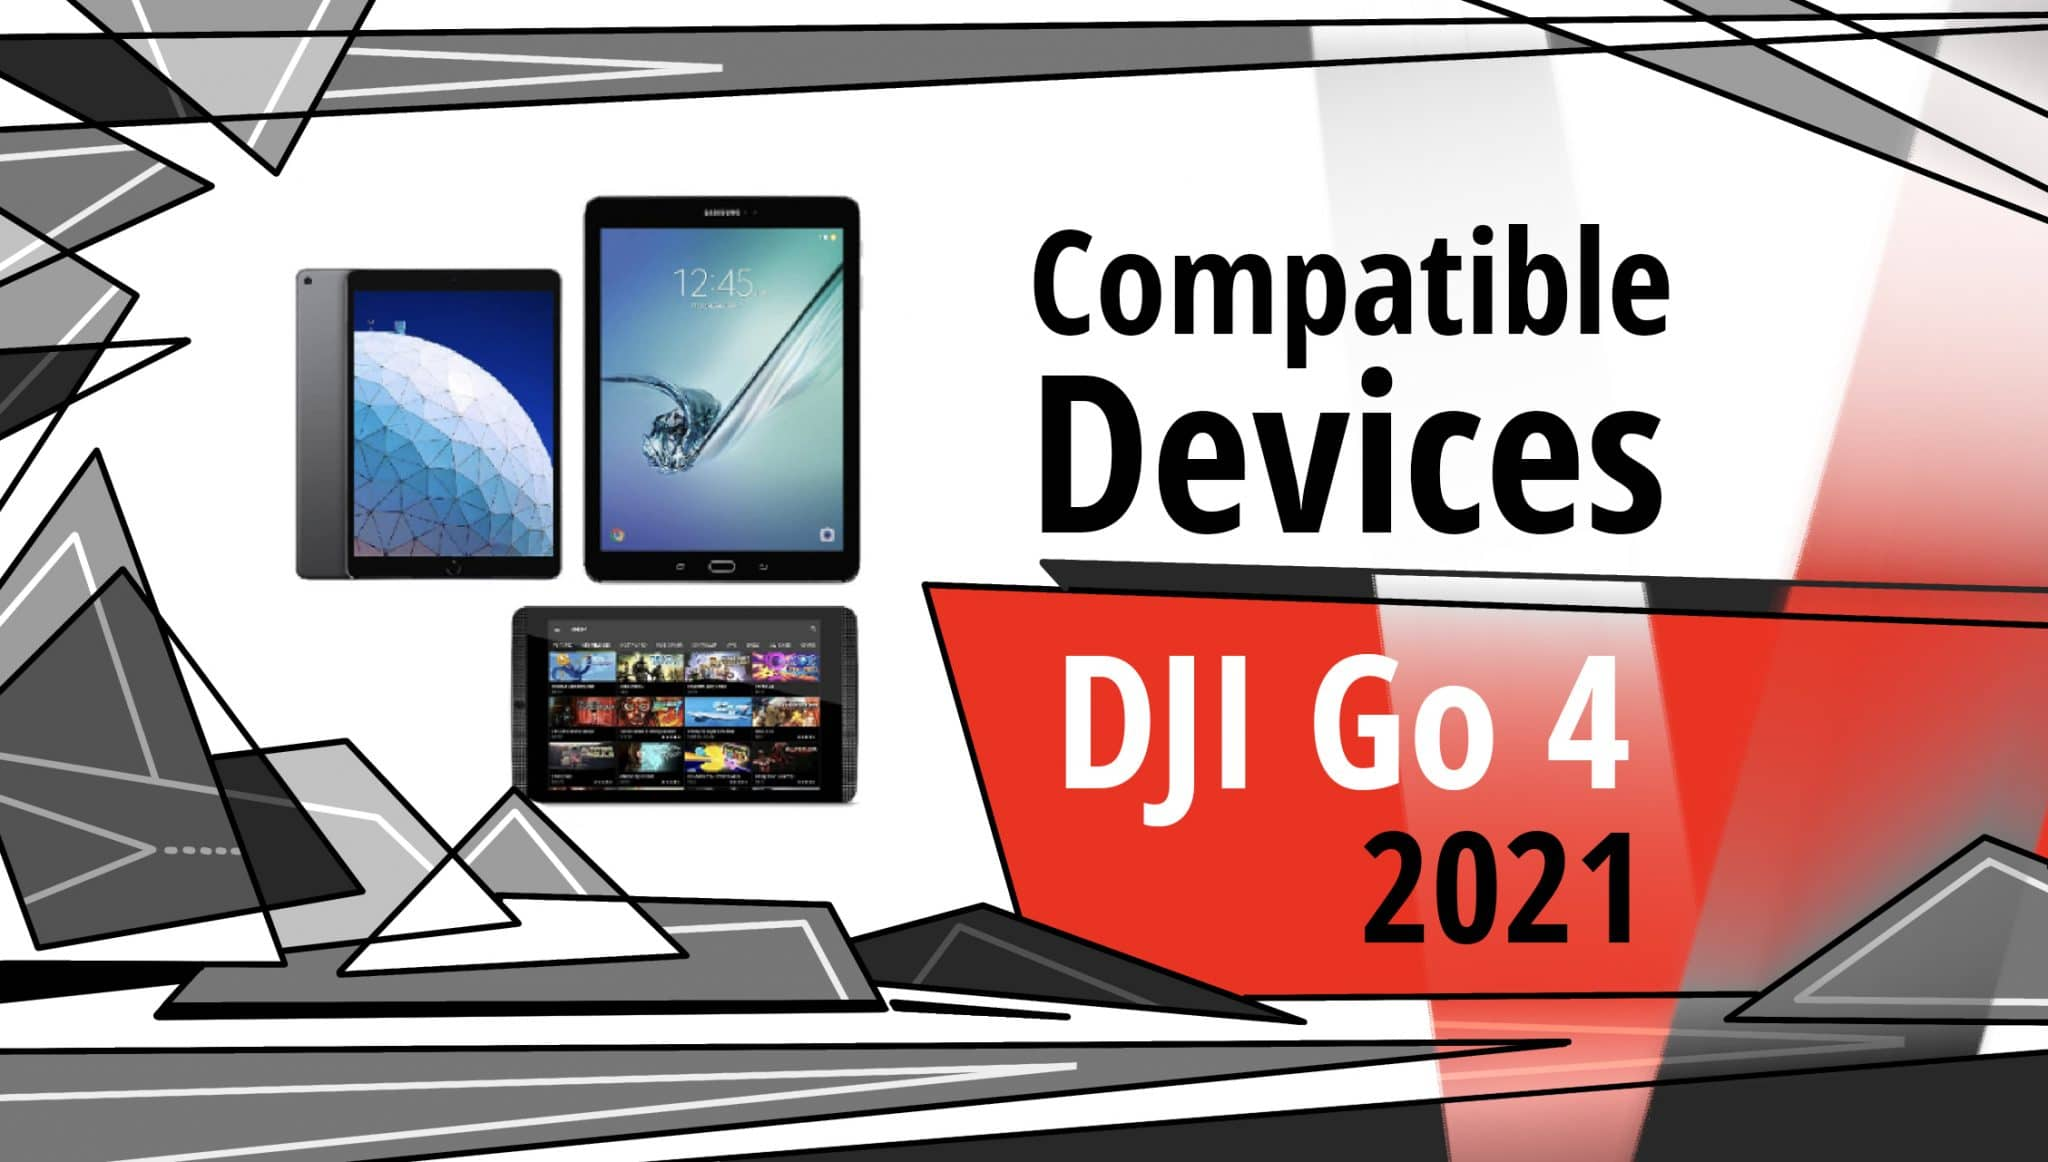 DJI Go 4 Compatible Devices